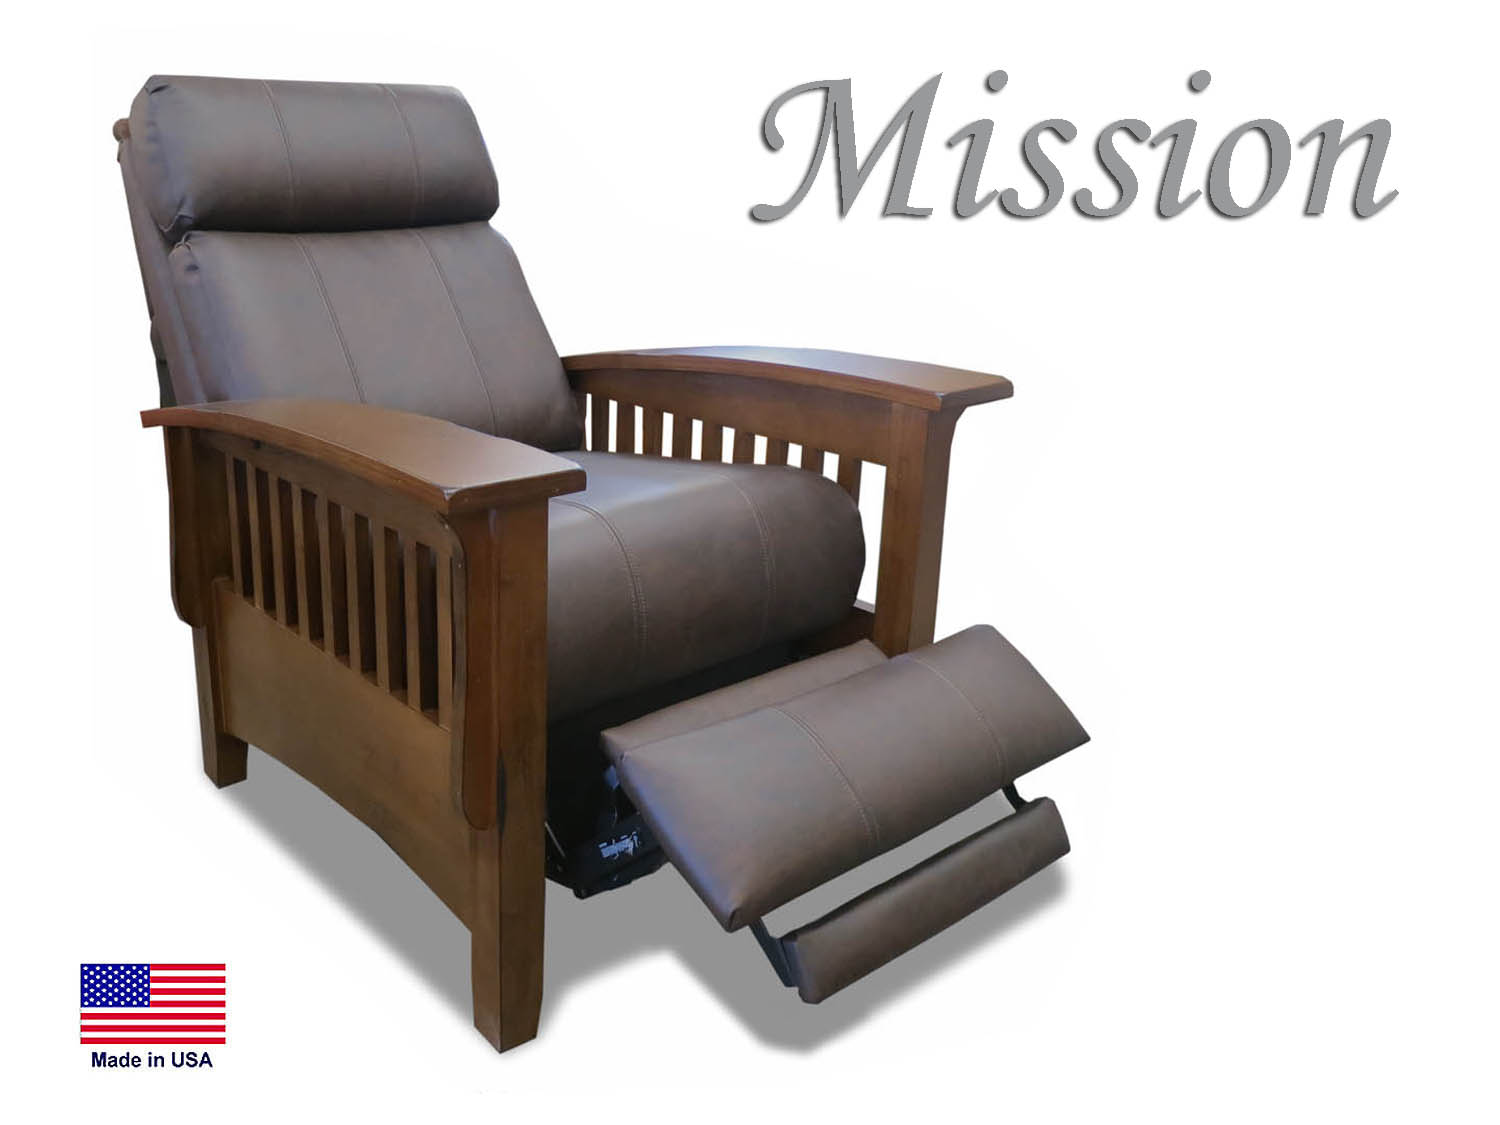 Barbo's Furniture, Mission, Push Back, Recliner, Power, Living Room, Family Room, Den, Seaside, Coastal, Cape Cod, Casual, Transitional, Traditional, Classic, Leather